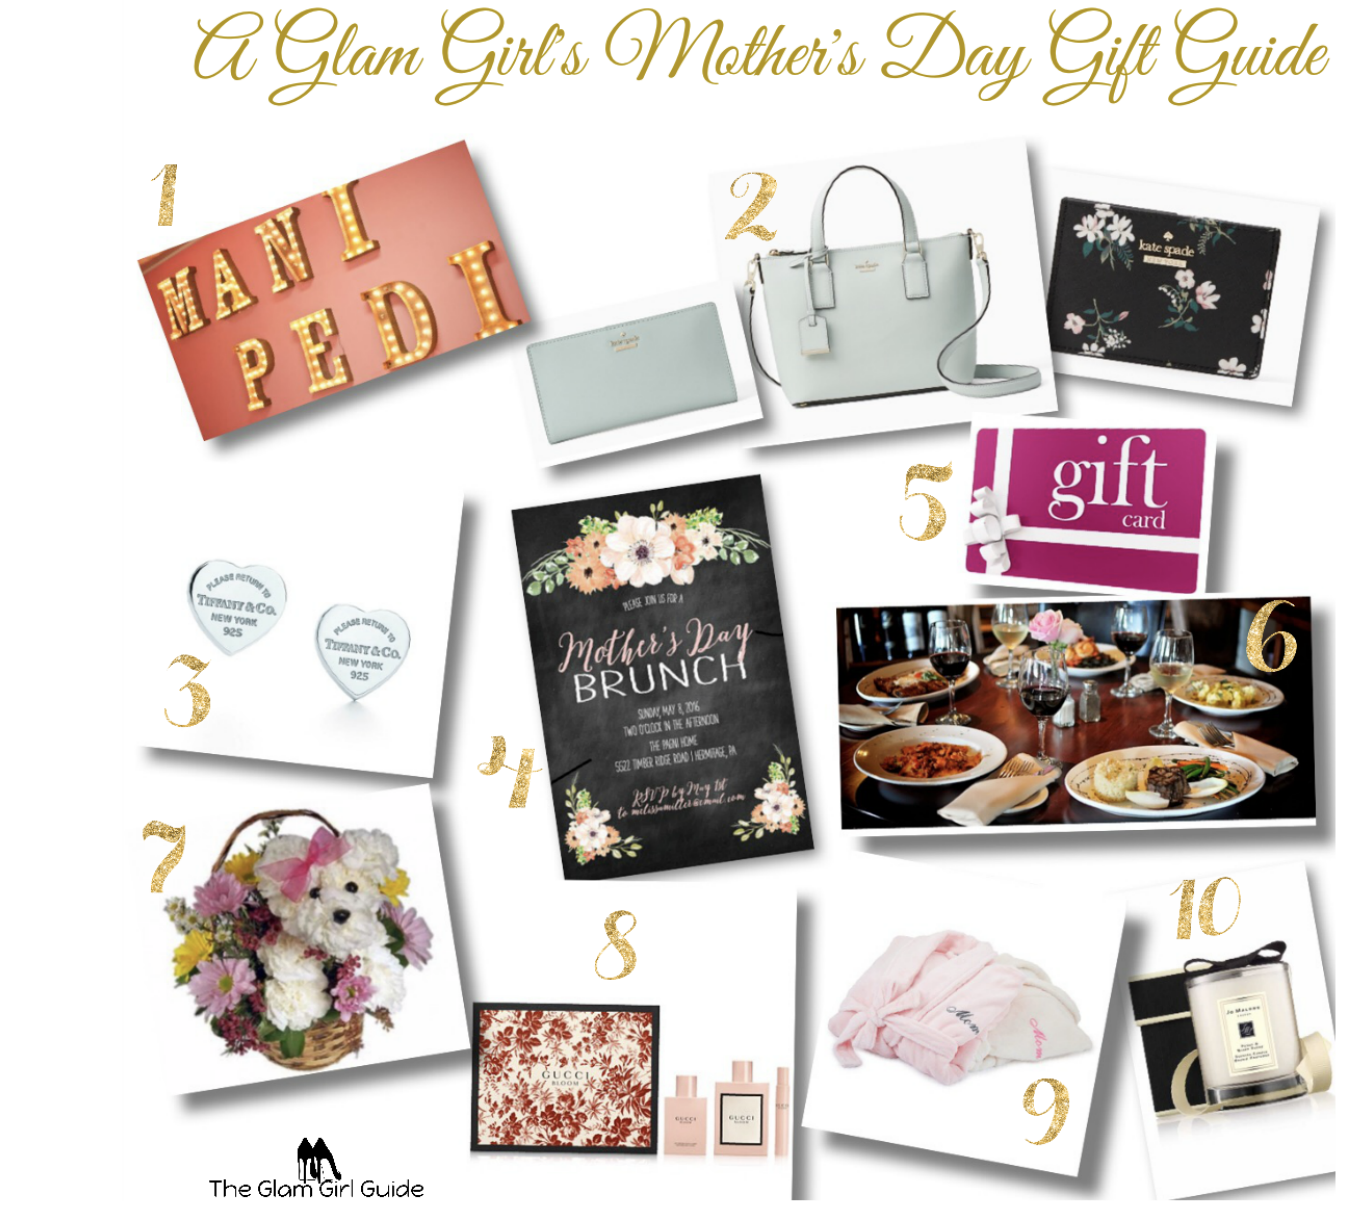 A Glam Motheru0027s Day Gift Guide  sc 1 st  The Glam Girl Guide & A Glam Motheru0027s Day Gift Guide u2014 The Glam Girl Guide